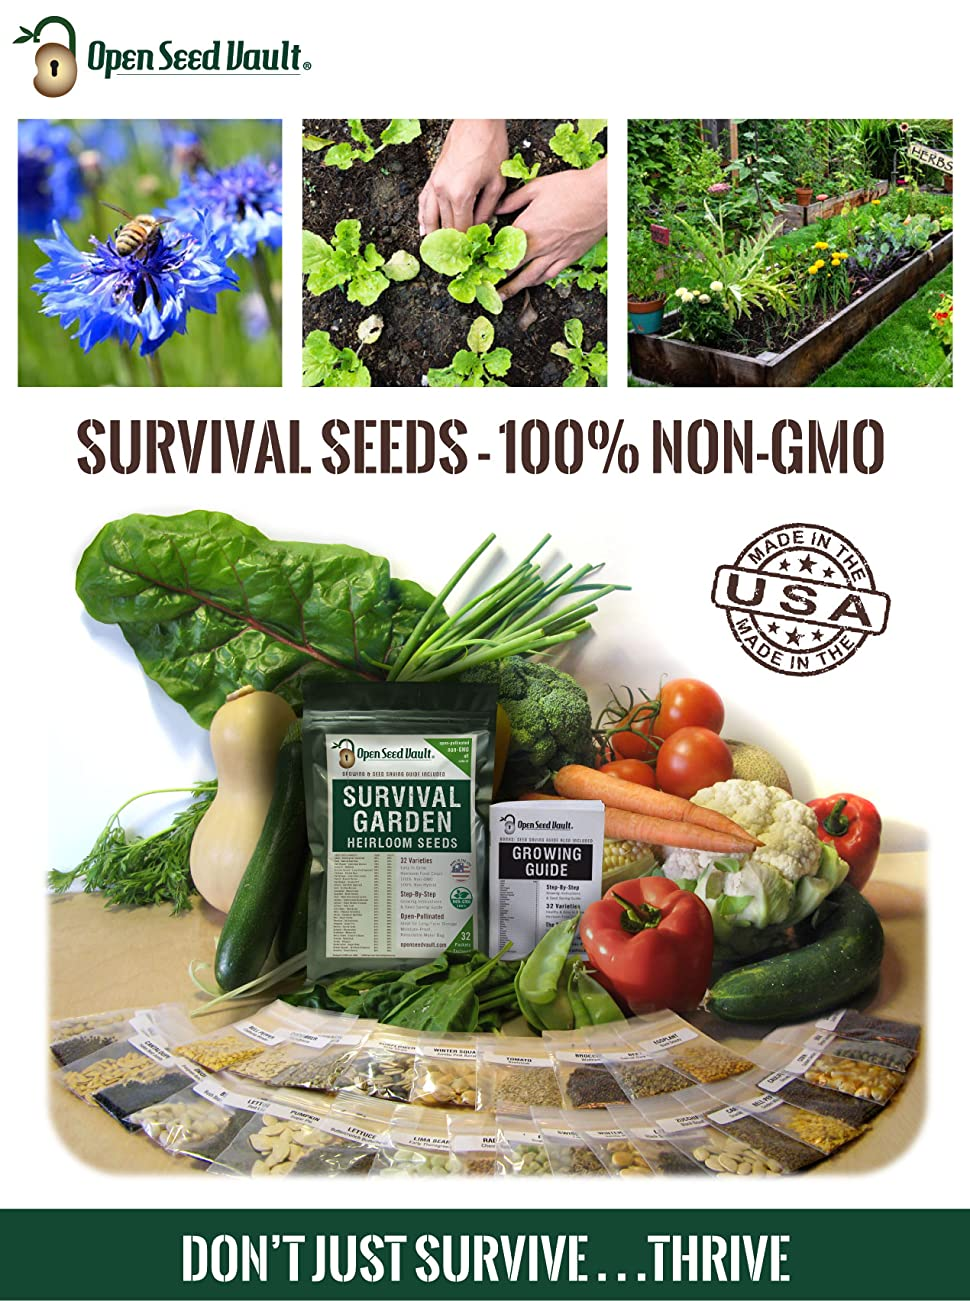 vegetable garden heirloom seed organic non gmo pea tomato cucumber squash open seed vault